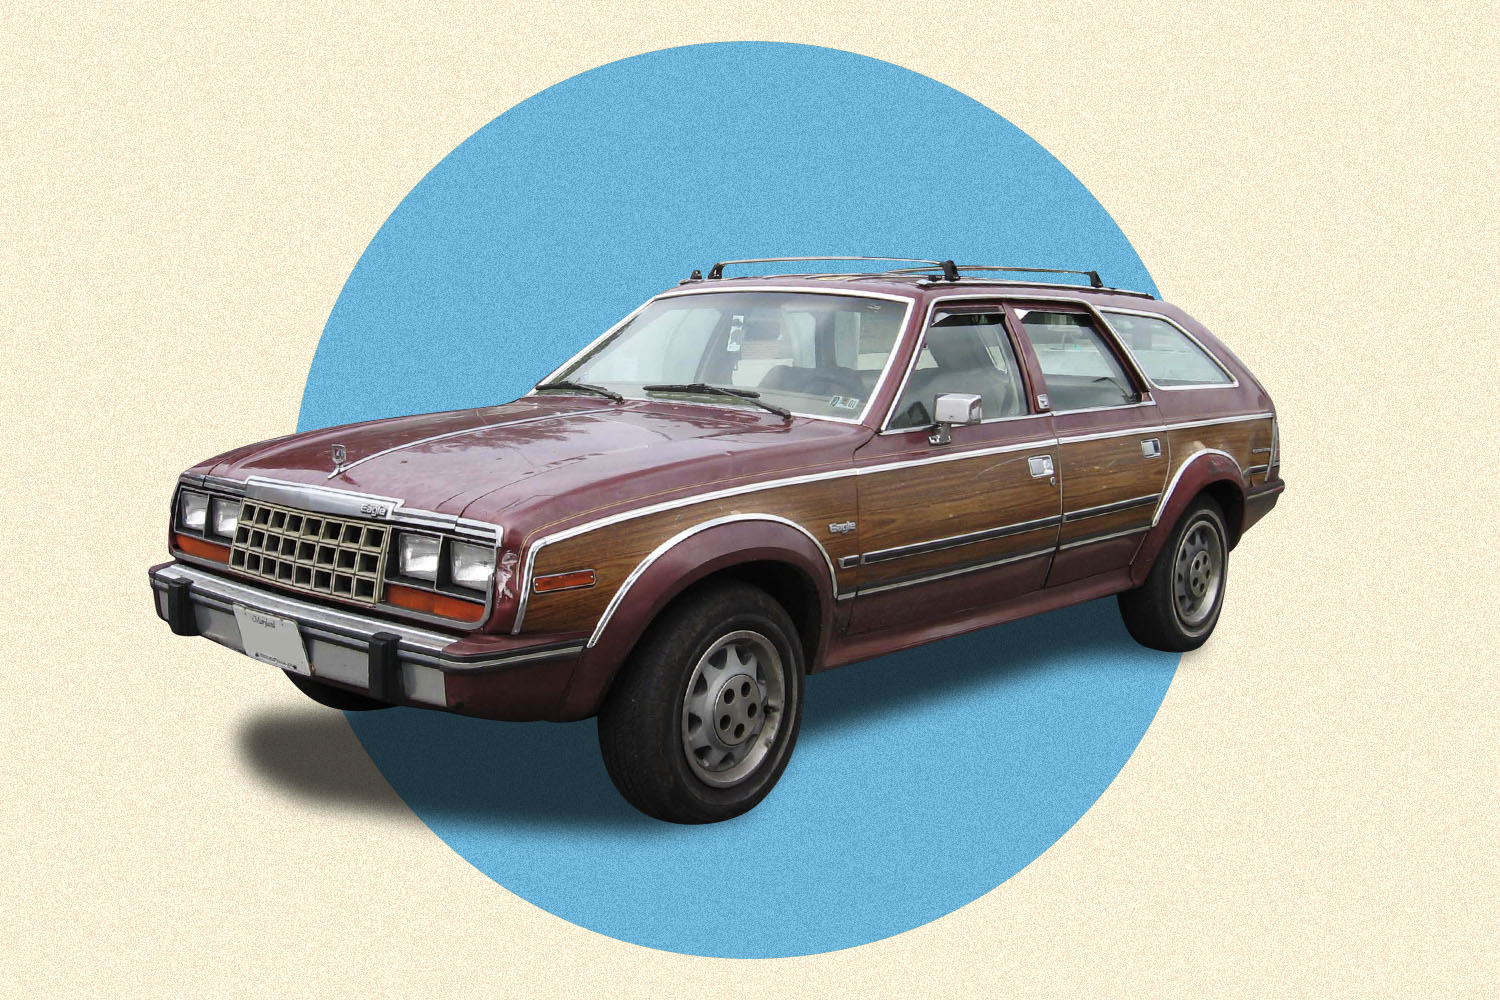 amc eagle station wagon